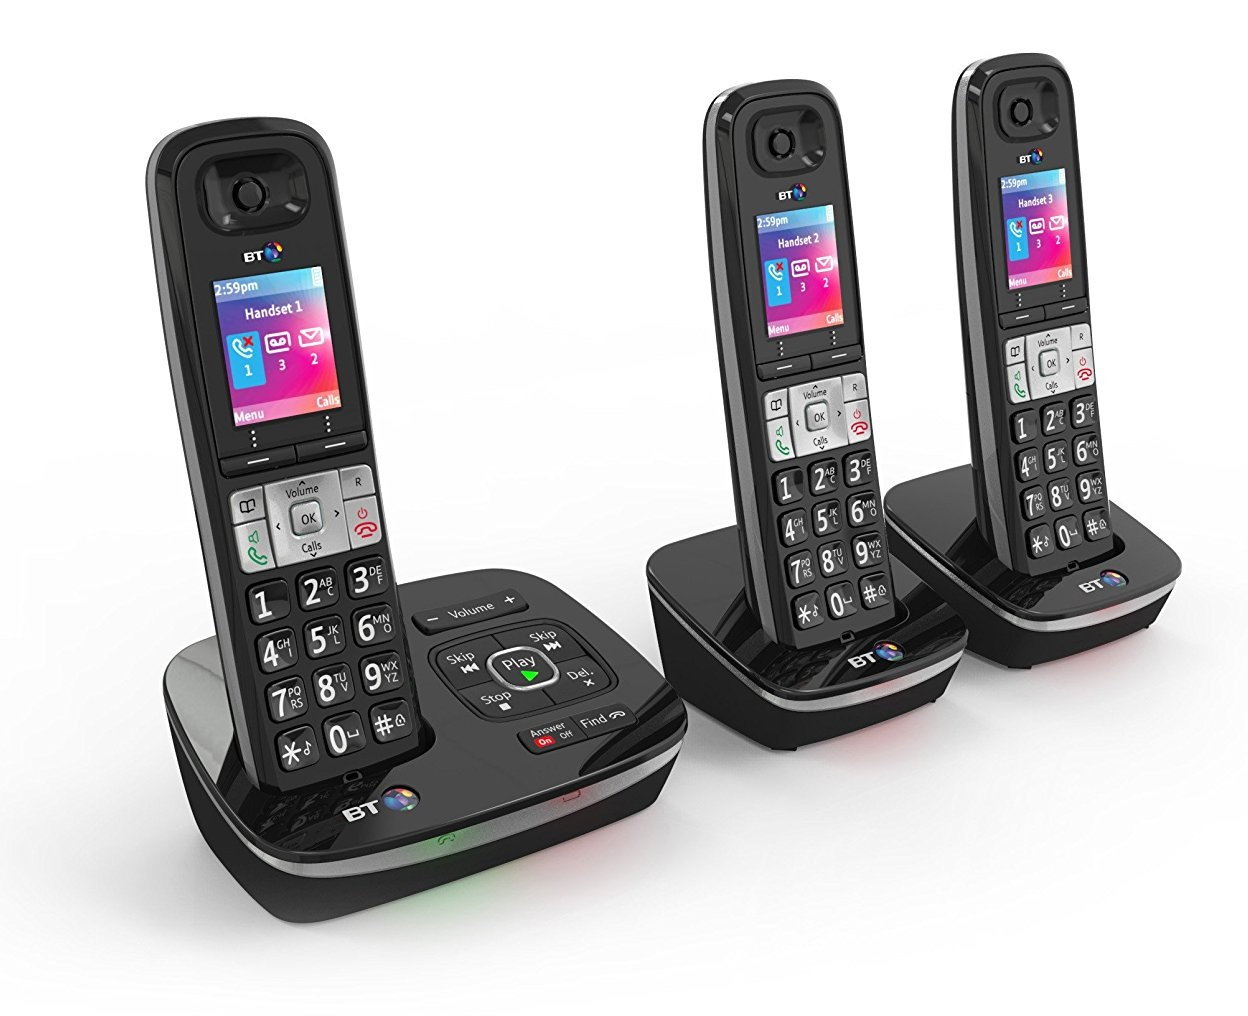 bt 8500 trio cordless dect home phone built in answer. Black Bedroom Furniture Sets. Home Design Ideas